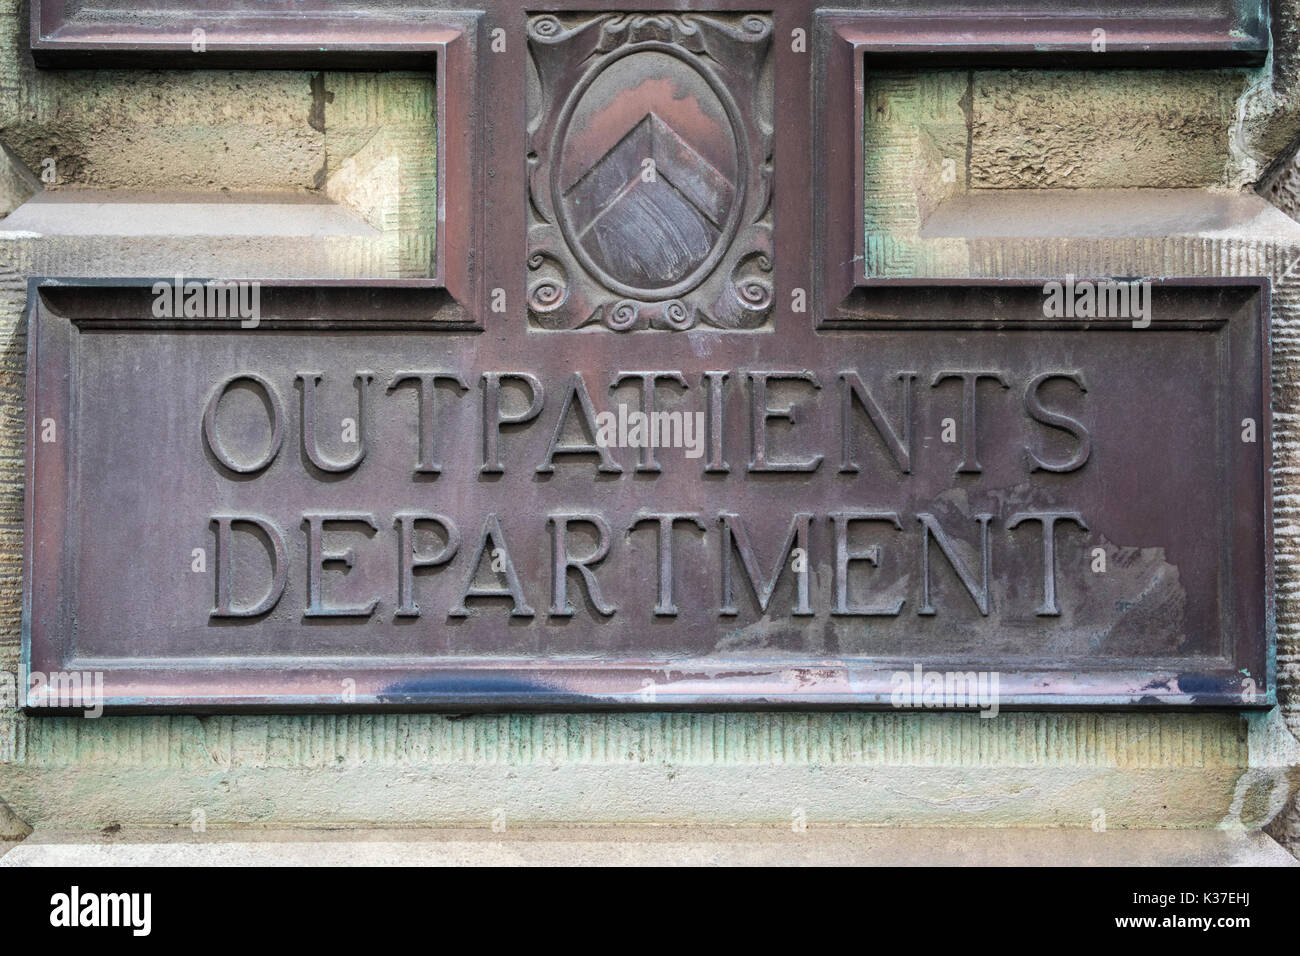 LONDON, UK - AUGUST 11TH 2017: A metal plaque at the Outpatients Department at St. Bartholomews Hospital in the City of London, on 11th August 2017. - Stock Image